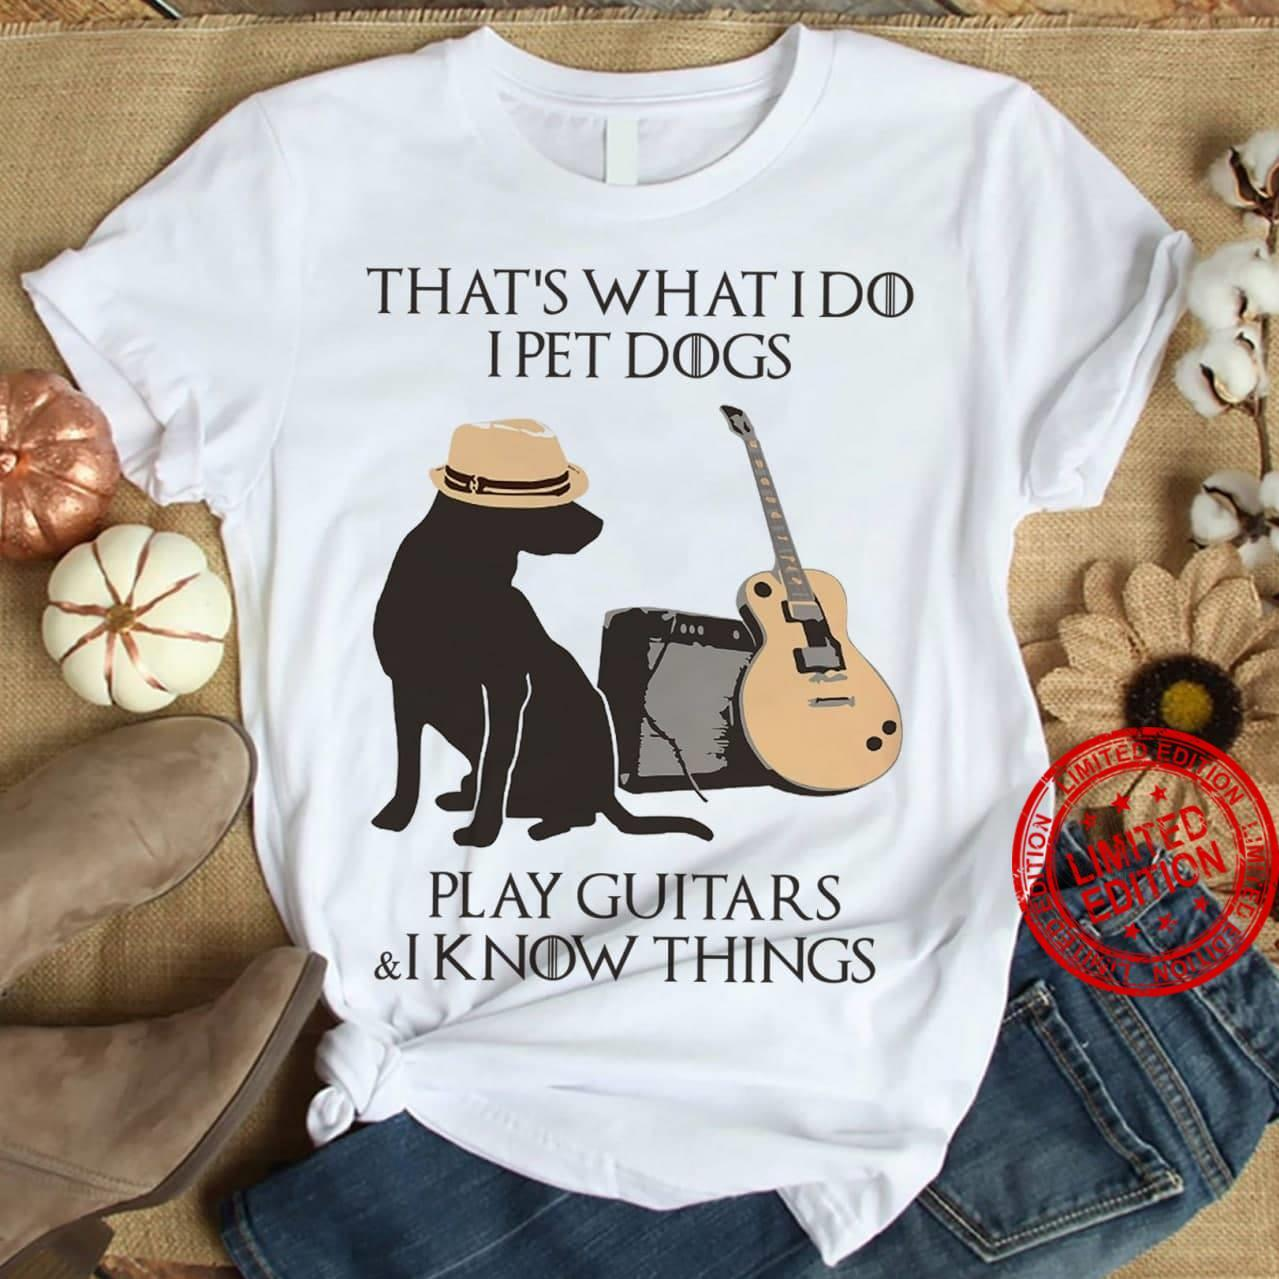 That's What I Do I Pet Dogs Play Guitars & I Know Things Shirt